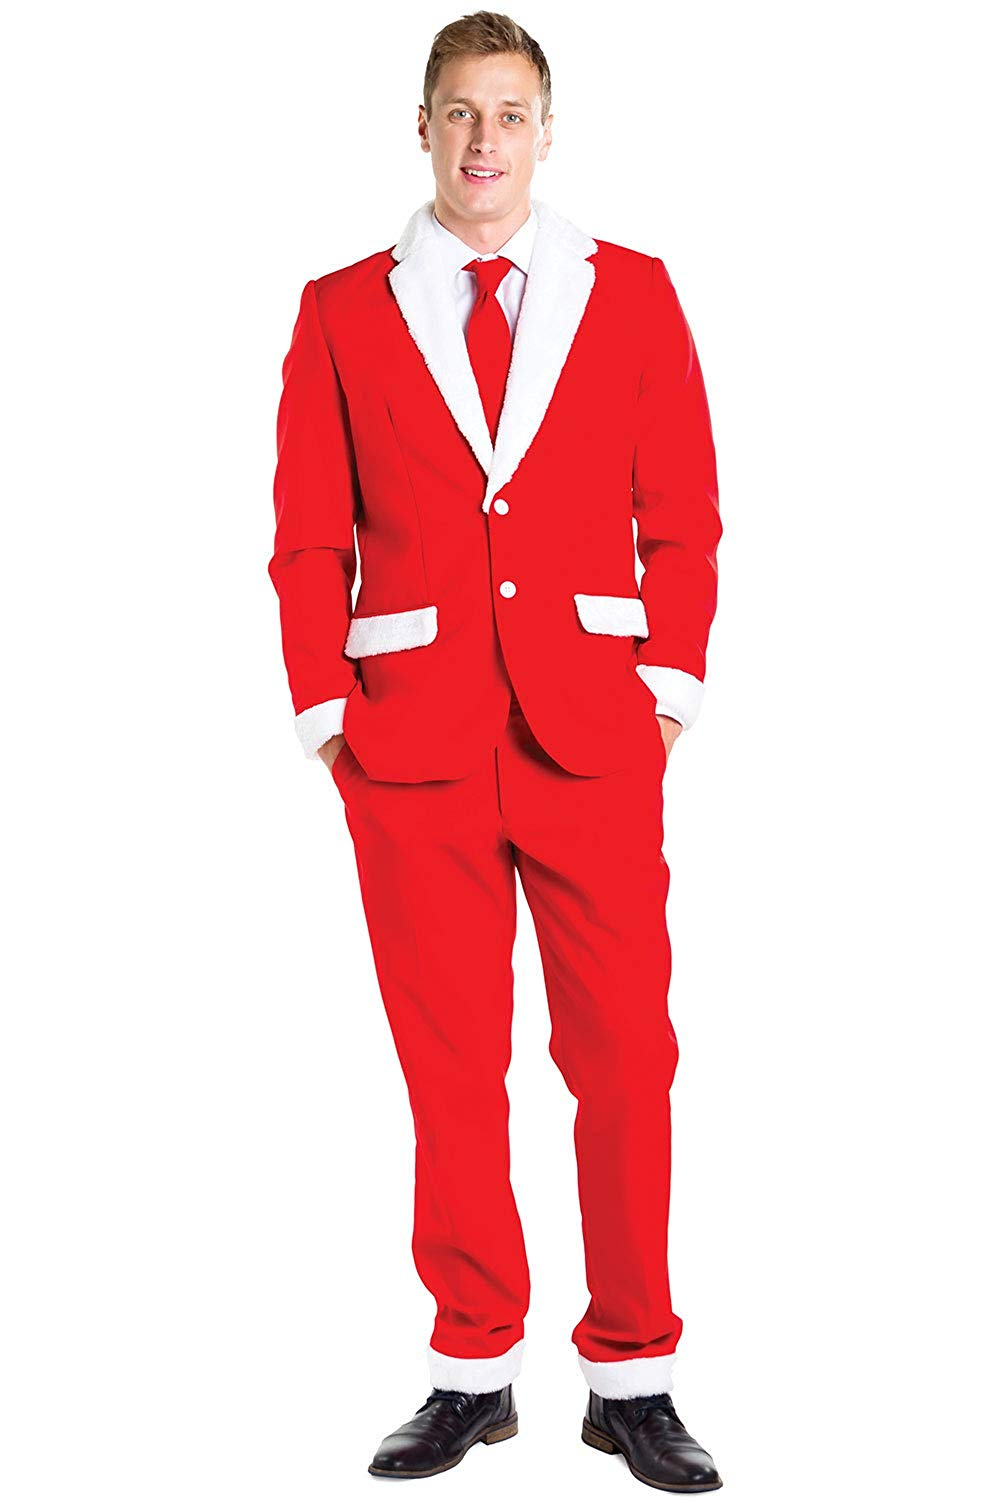 Mens Suits Santa Claus Suit With Furry Lapels And Cuffs - Red And White Santa Christmas Suit(Blazer+Pants)